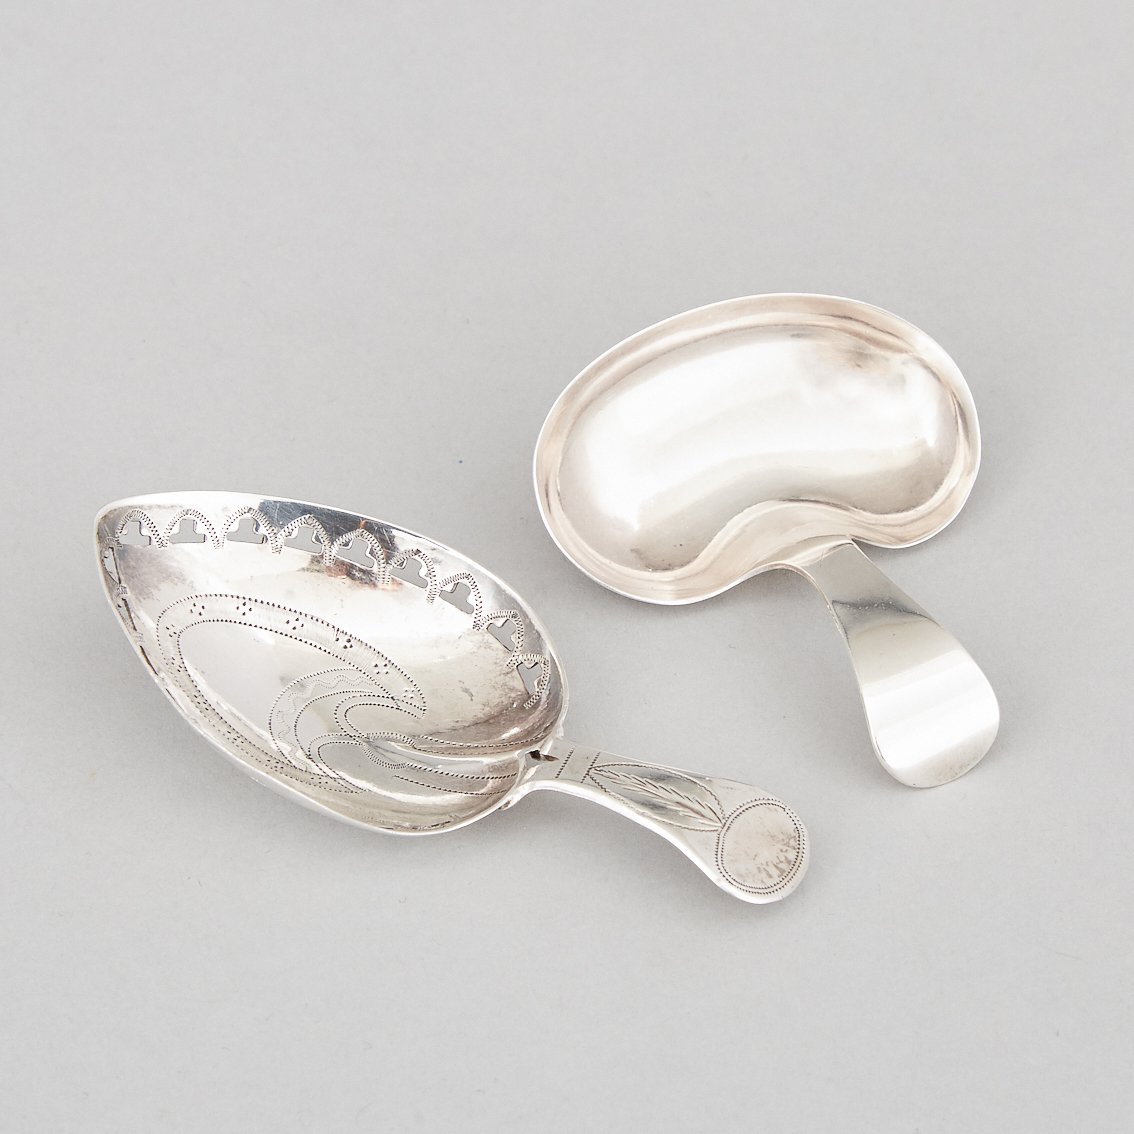 Two George III Silver Heart or Kidney Shaped Caddy Spoons, Joseph Taylor and Cocks & Bettridge, Birmingham, 1807/10